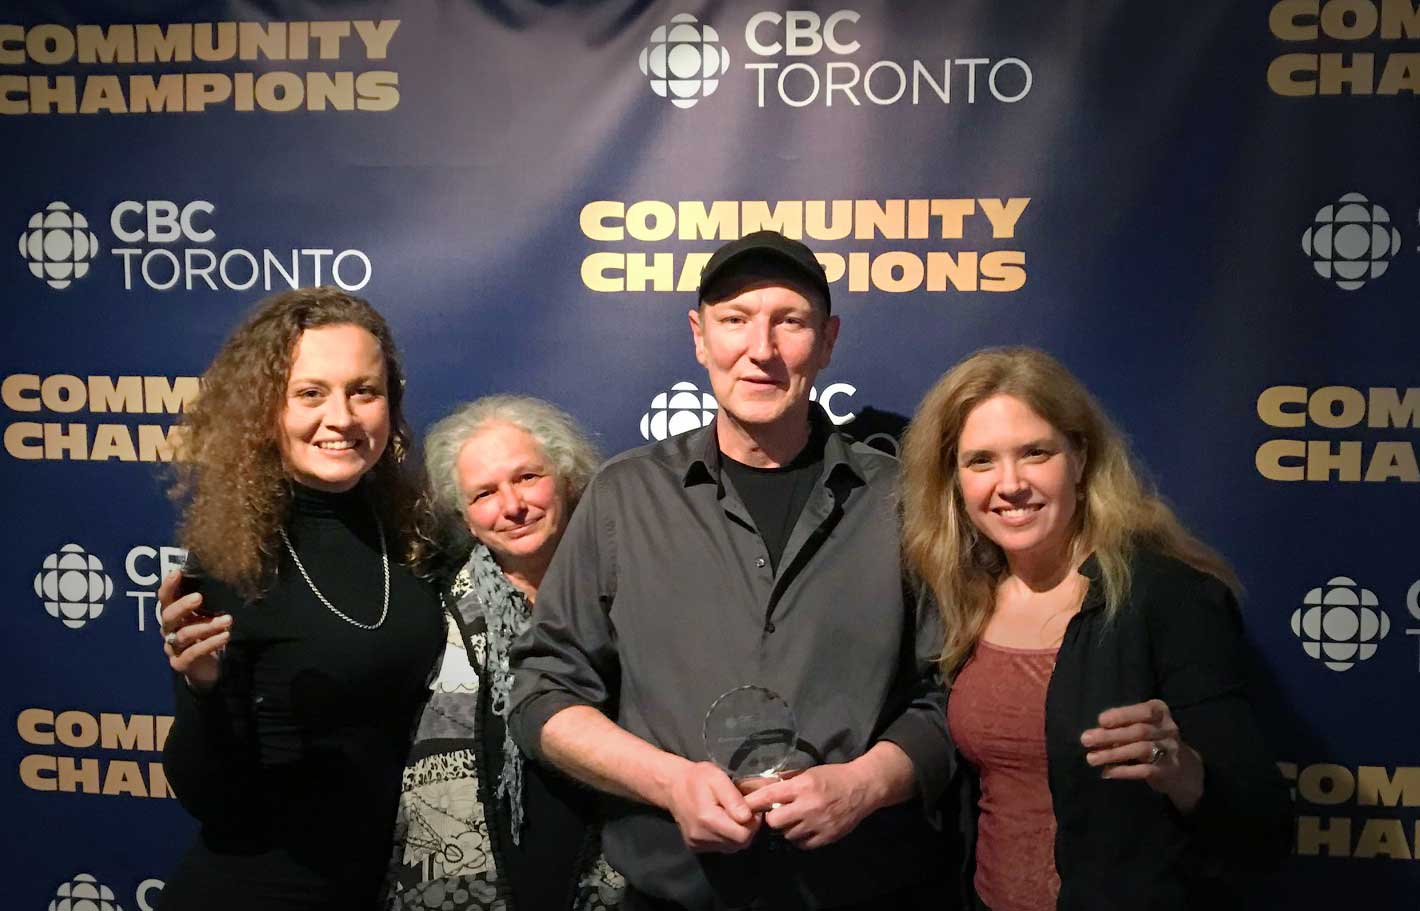 The local artists and Cota staff at the CBC Community Champions awards evening